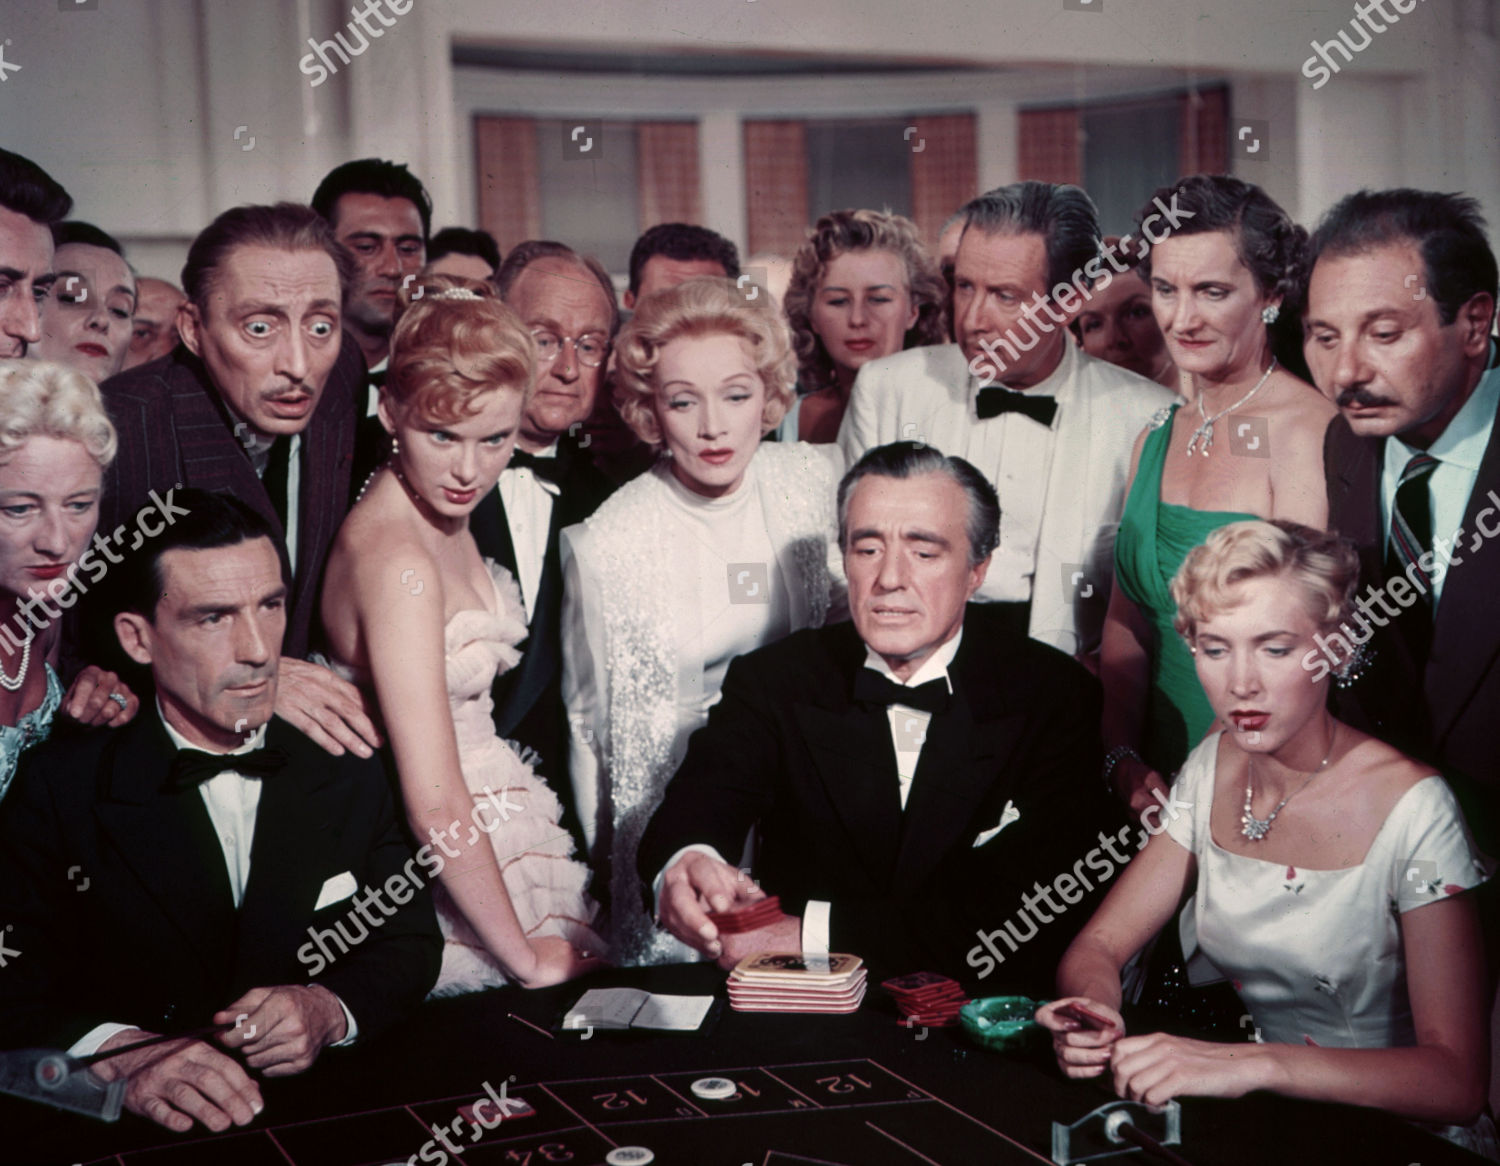 the-monte-carlo-story-1956-shutterstock-editorial-5877767h.jpg